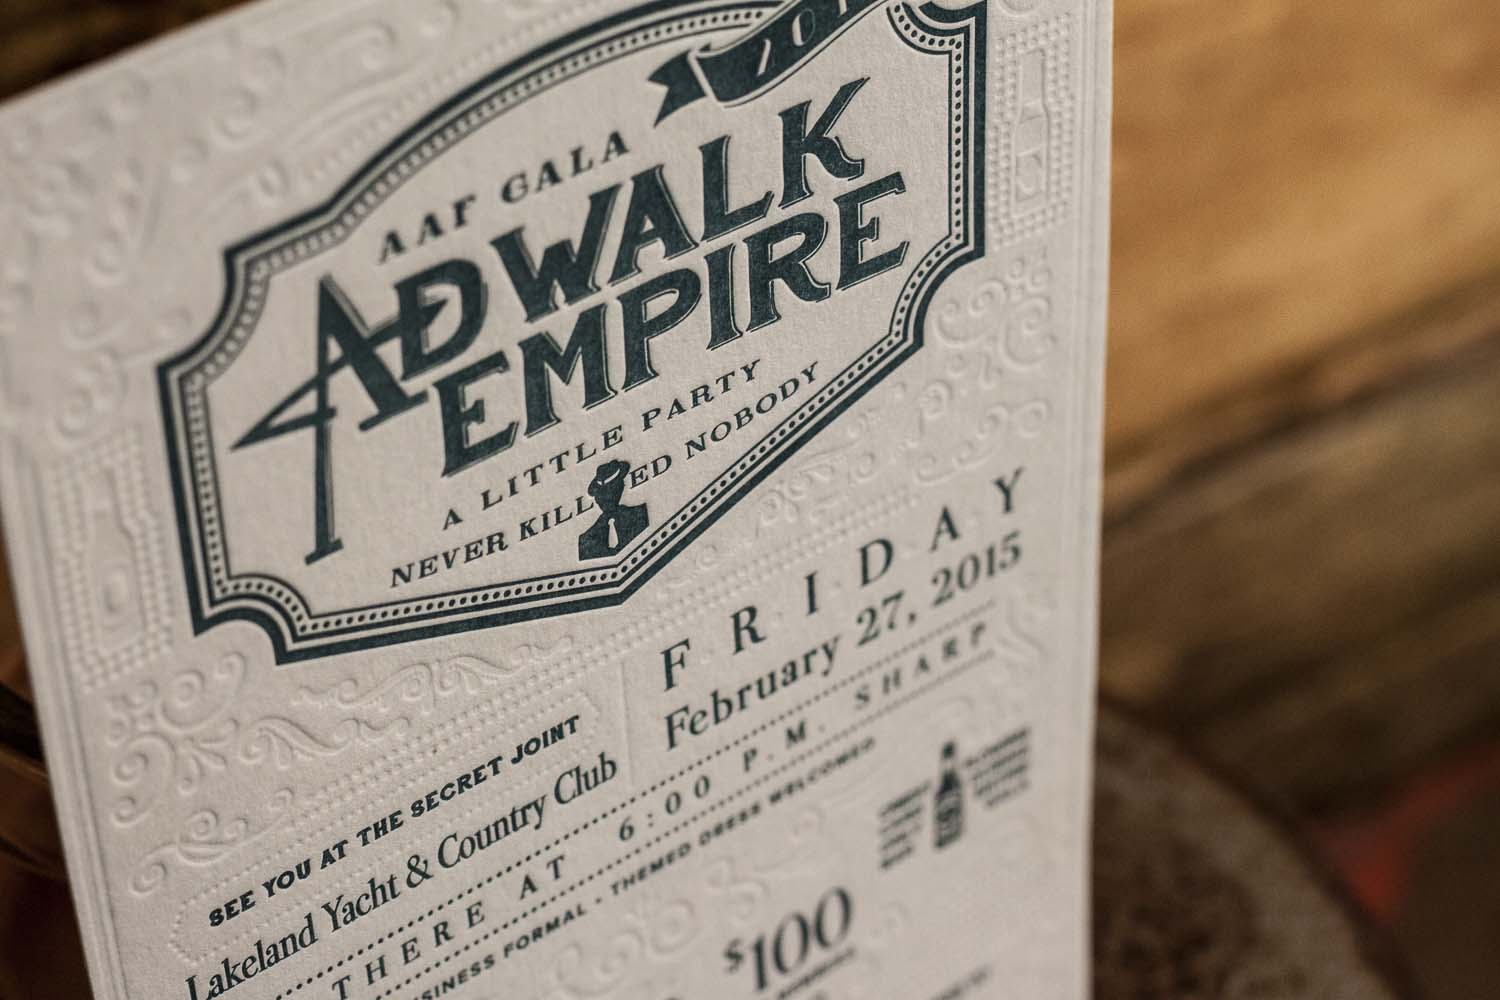 AdWalk Empire Letterpress Invitations